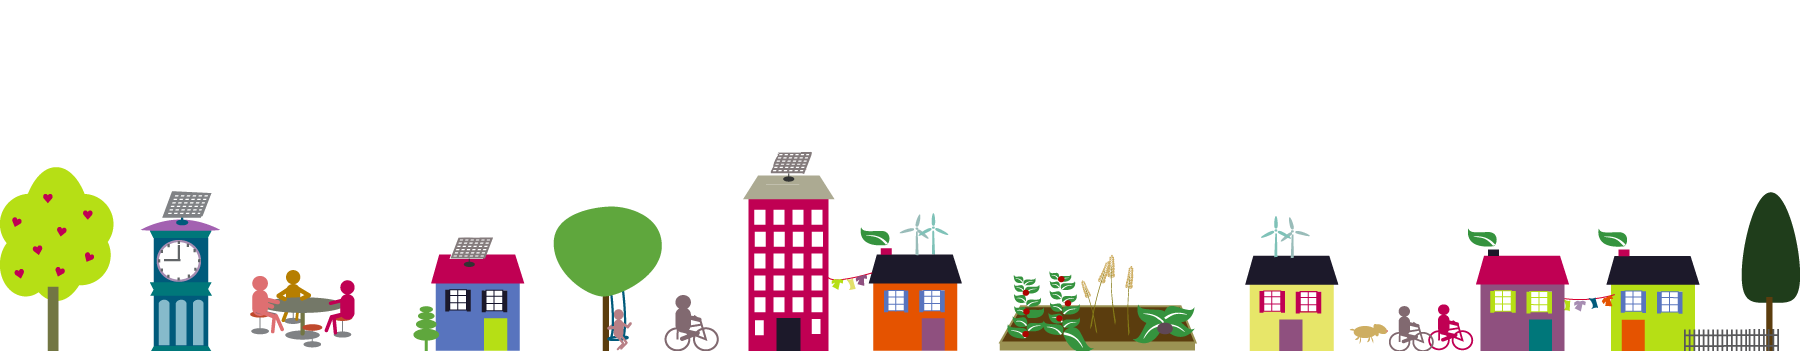 resilient neighbourhood graphic of buildings, trees, and community garden